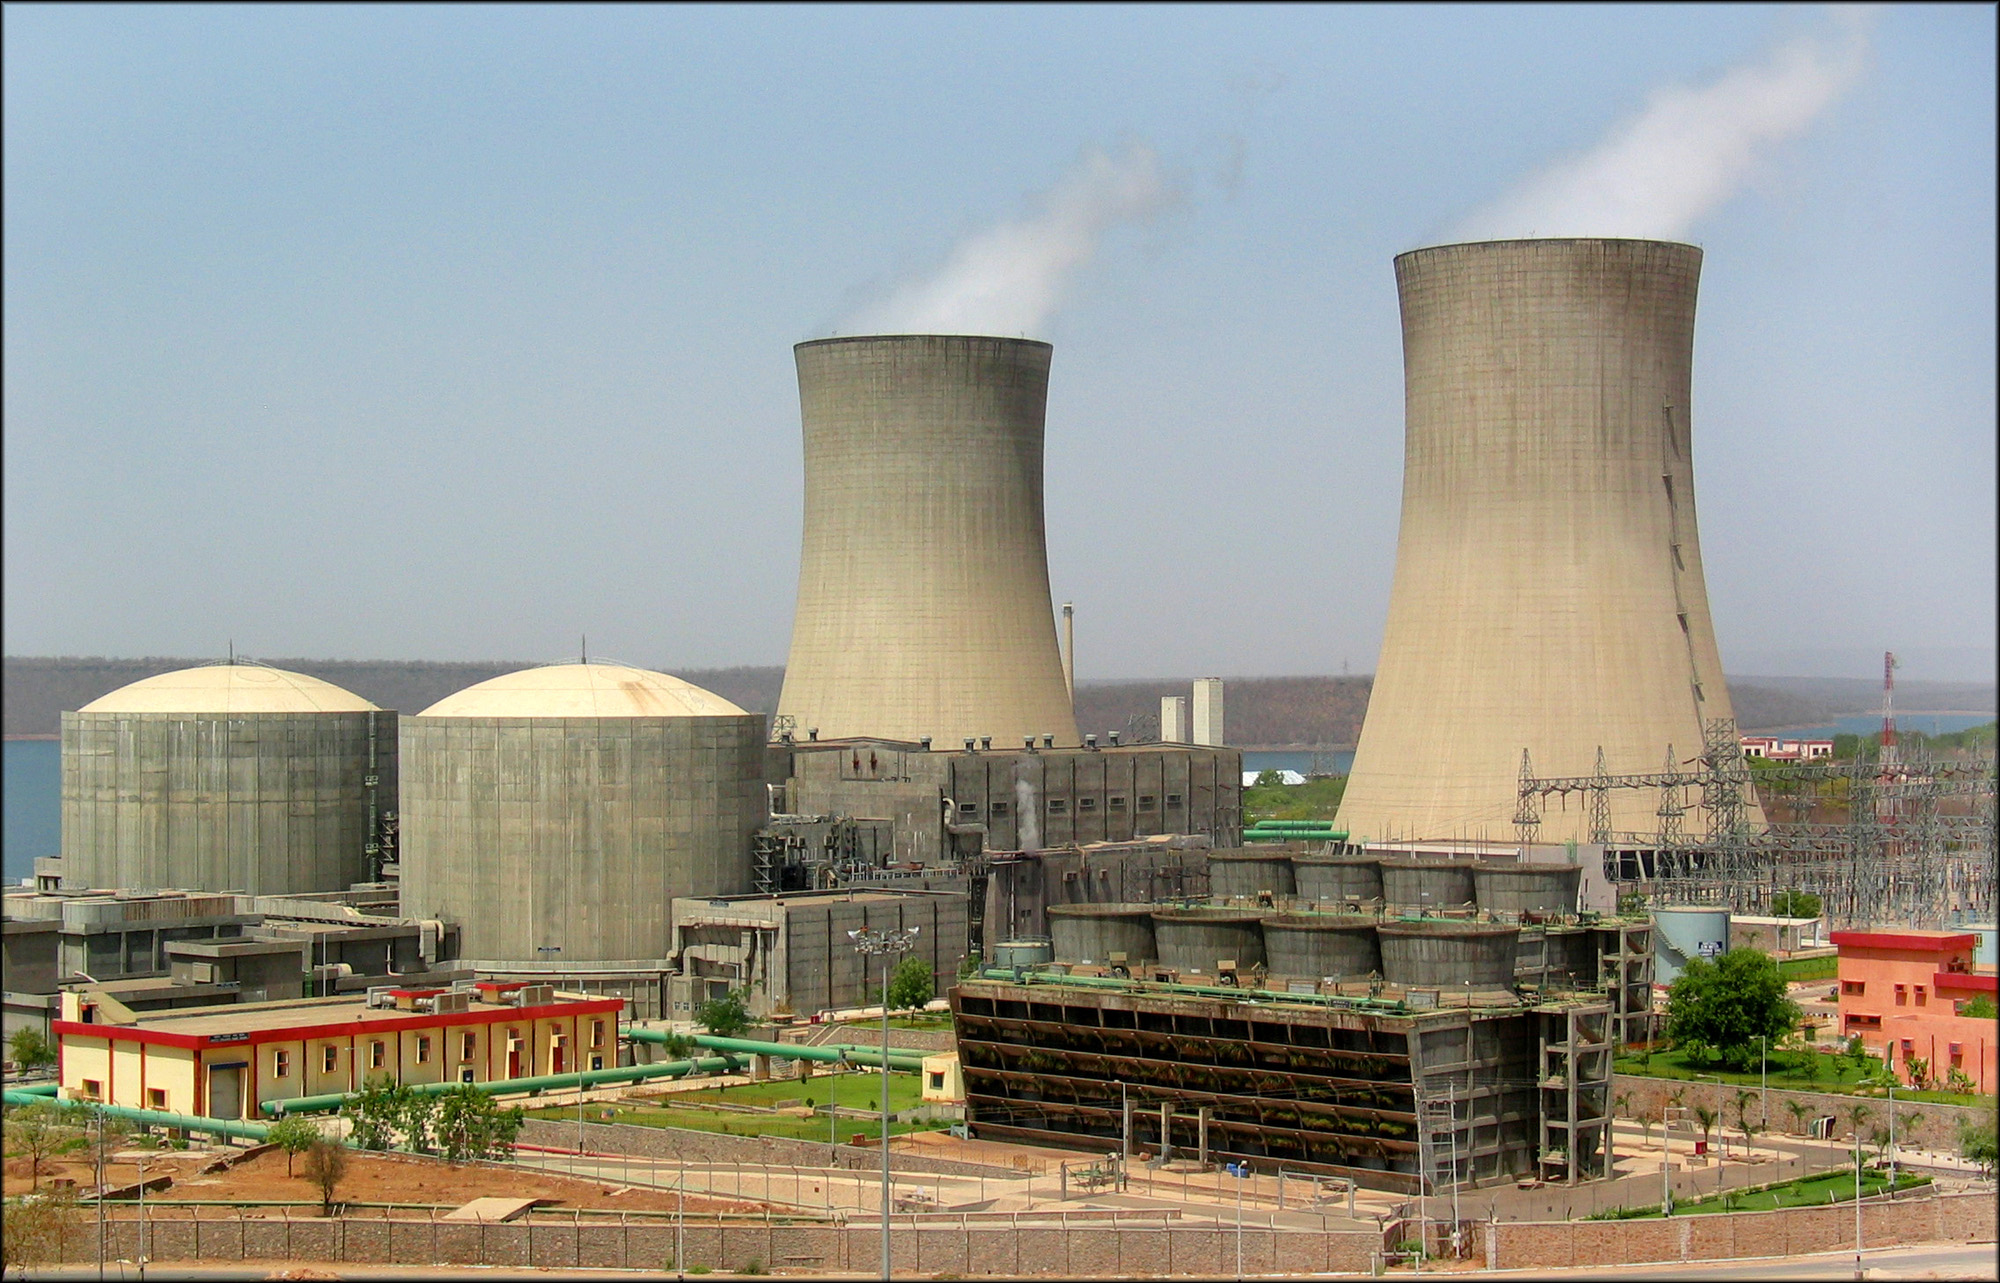 essay on nuclear power plants in india In the 1950s, india's nuclear planners drew up a three-stage plan for nuclear power development stage one was to consist of operating power plants using indian.